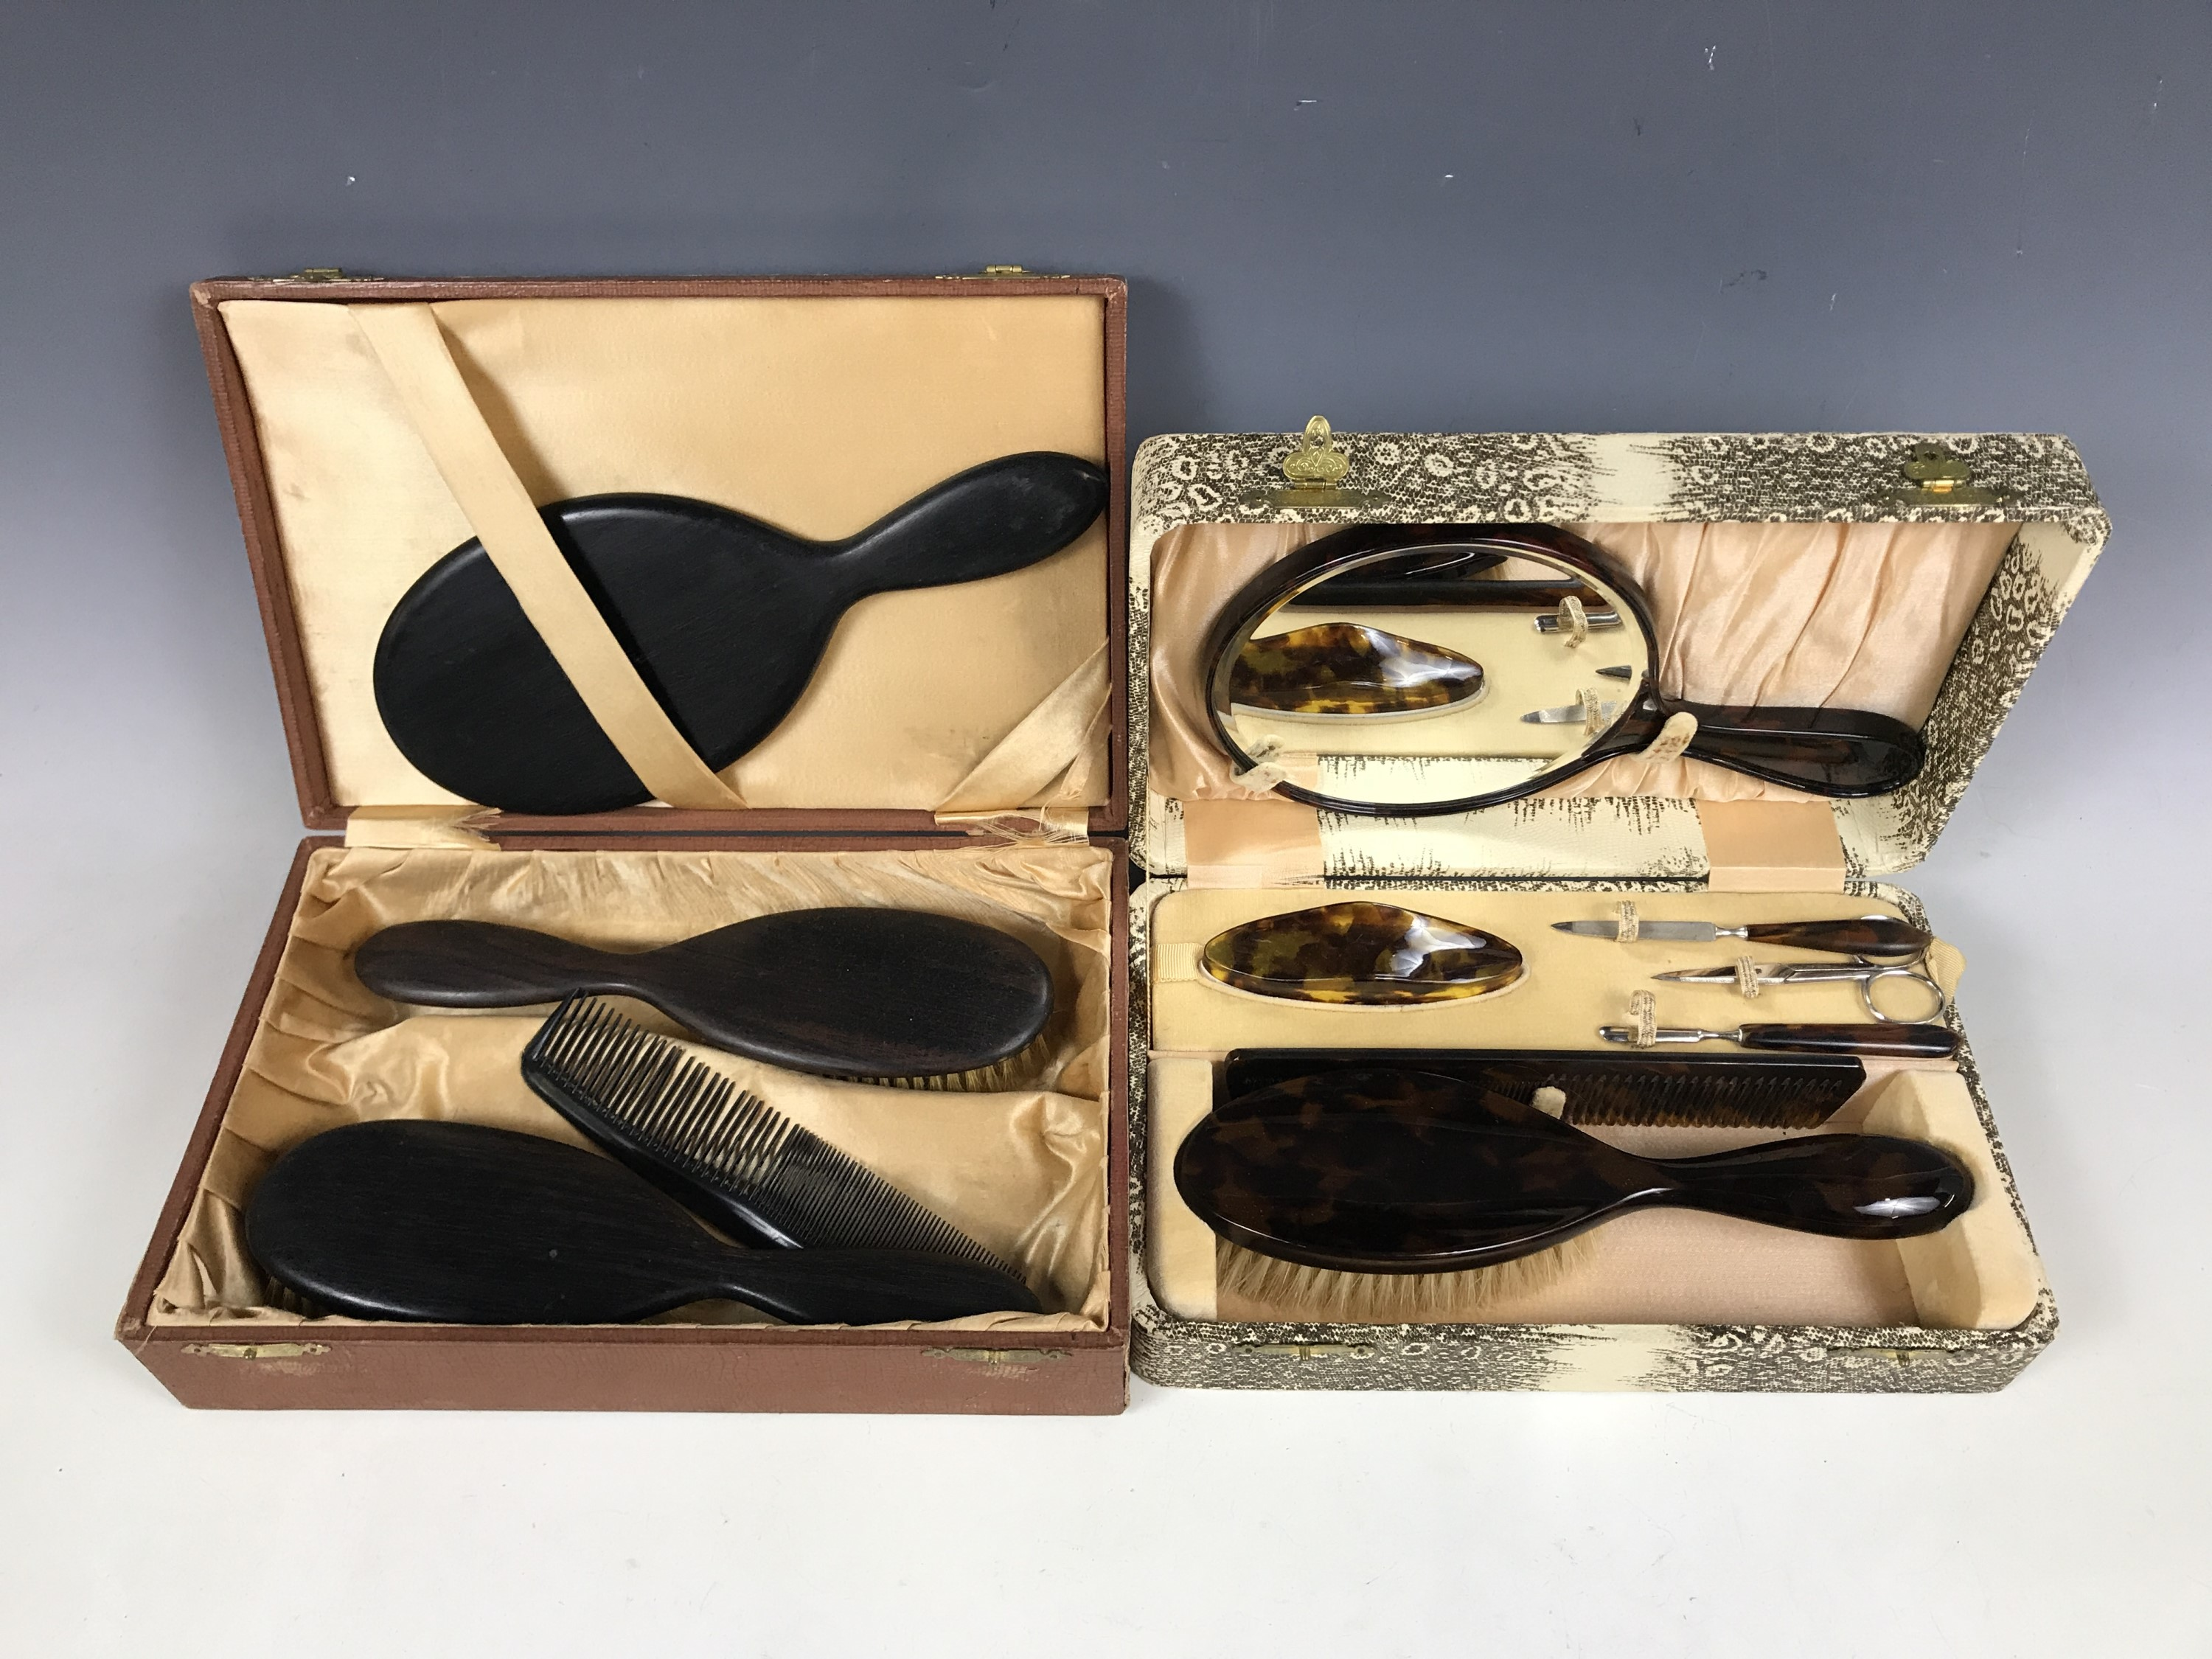 Lot 10 - A cased grooming set comprising hairbrush and manicure items, together with one further cased